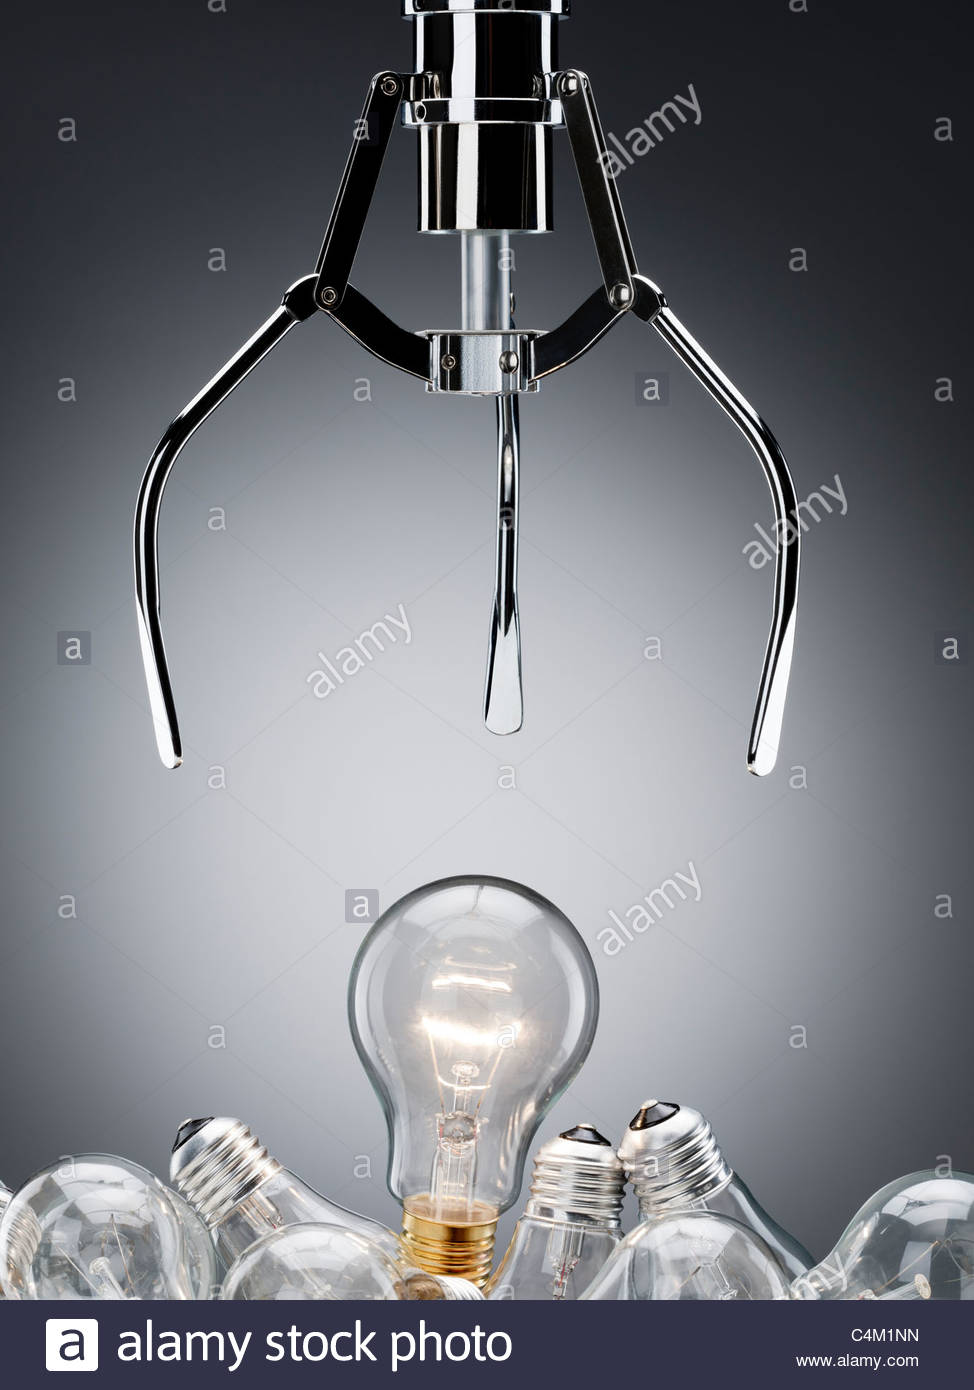 Mechanical claw reaching for light bulb - Stock Image